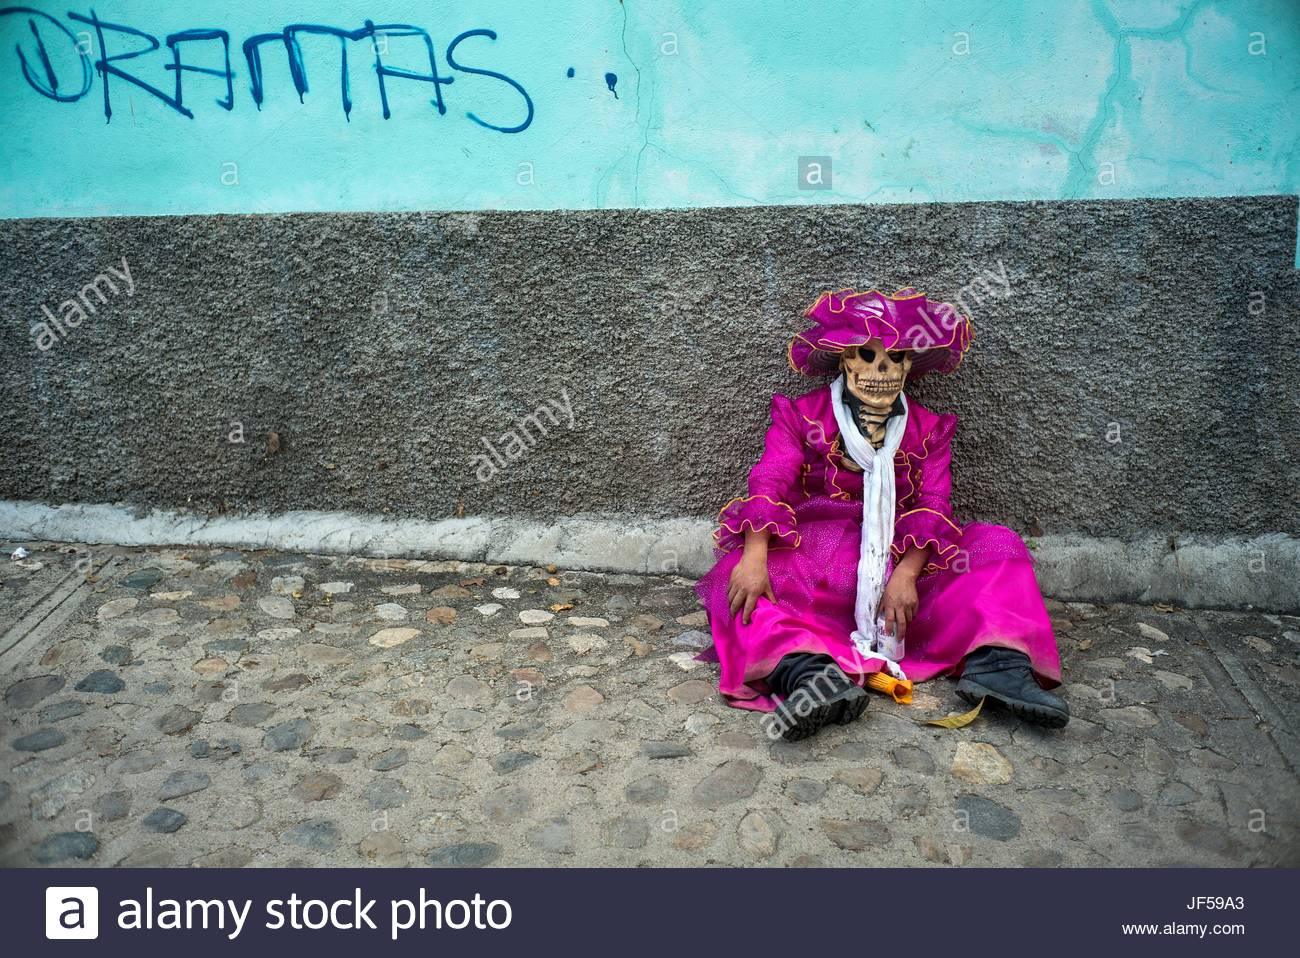 A drunk and tired participant rests in a street during a Day of the Dead celebration. - Stock Image